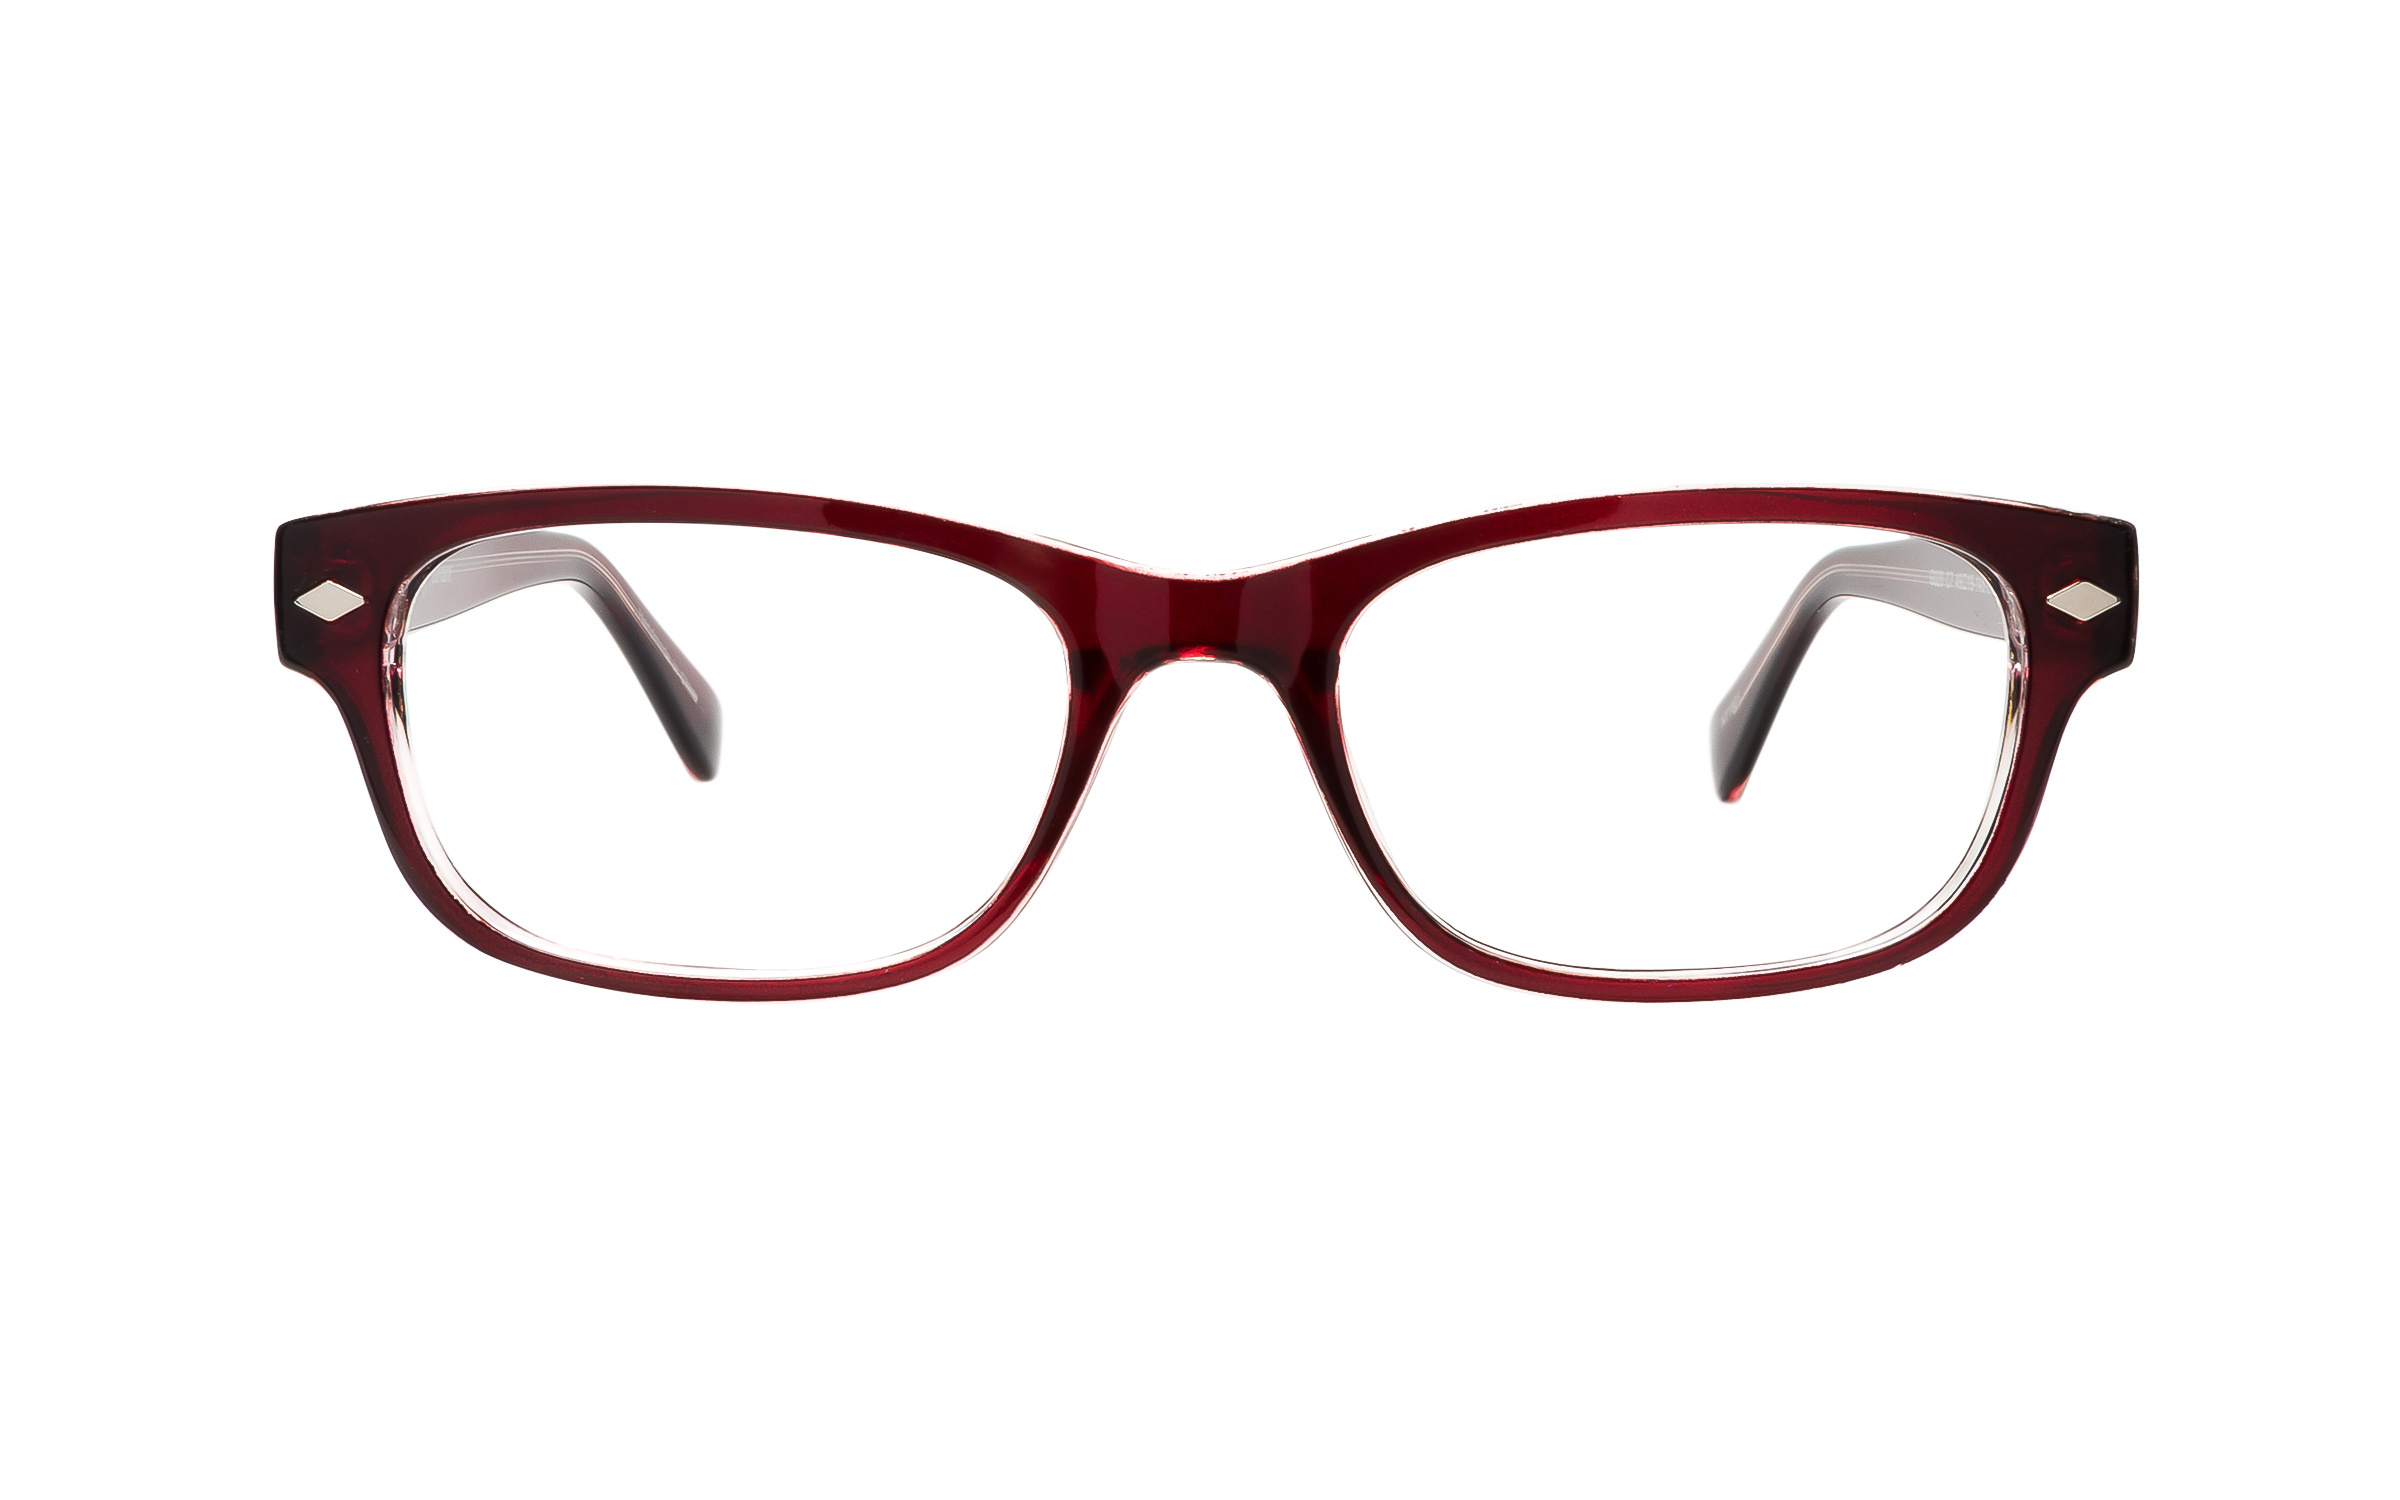 Clearly Basics Slate Falls G020 C7 (49) Eyeglasses and Frame in Red - Online Coastal